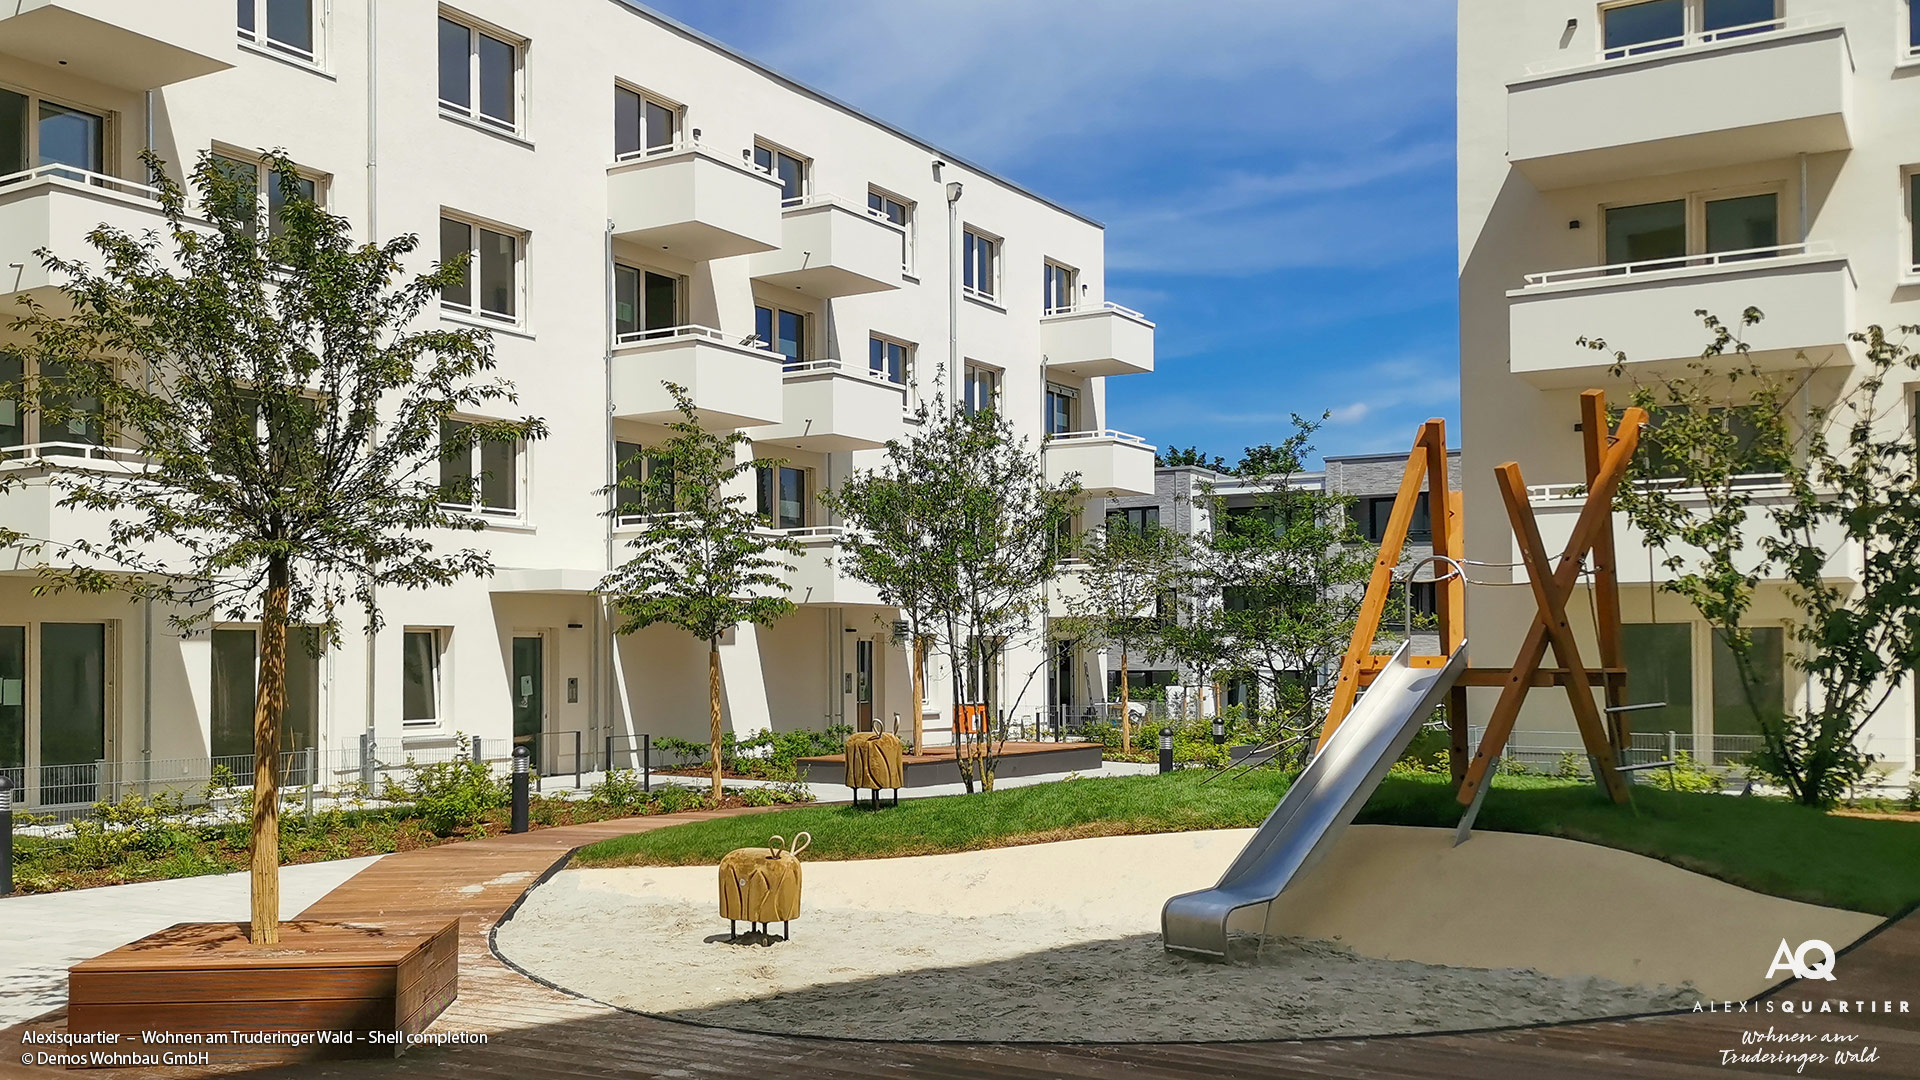 'Alexisquartier - Wohnen am Truderinger Wald' is ready for occupancy!